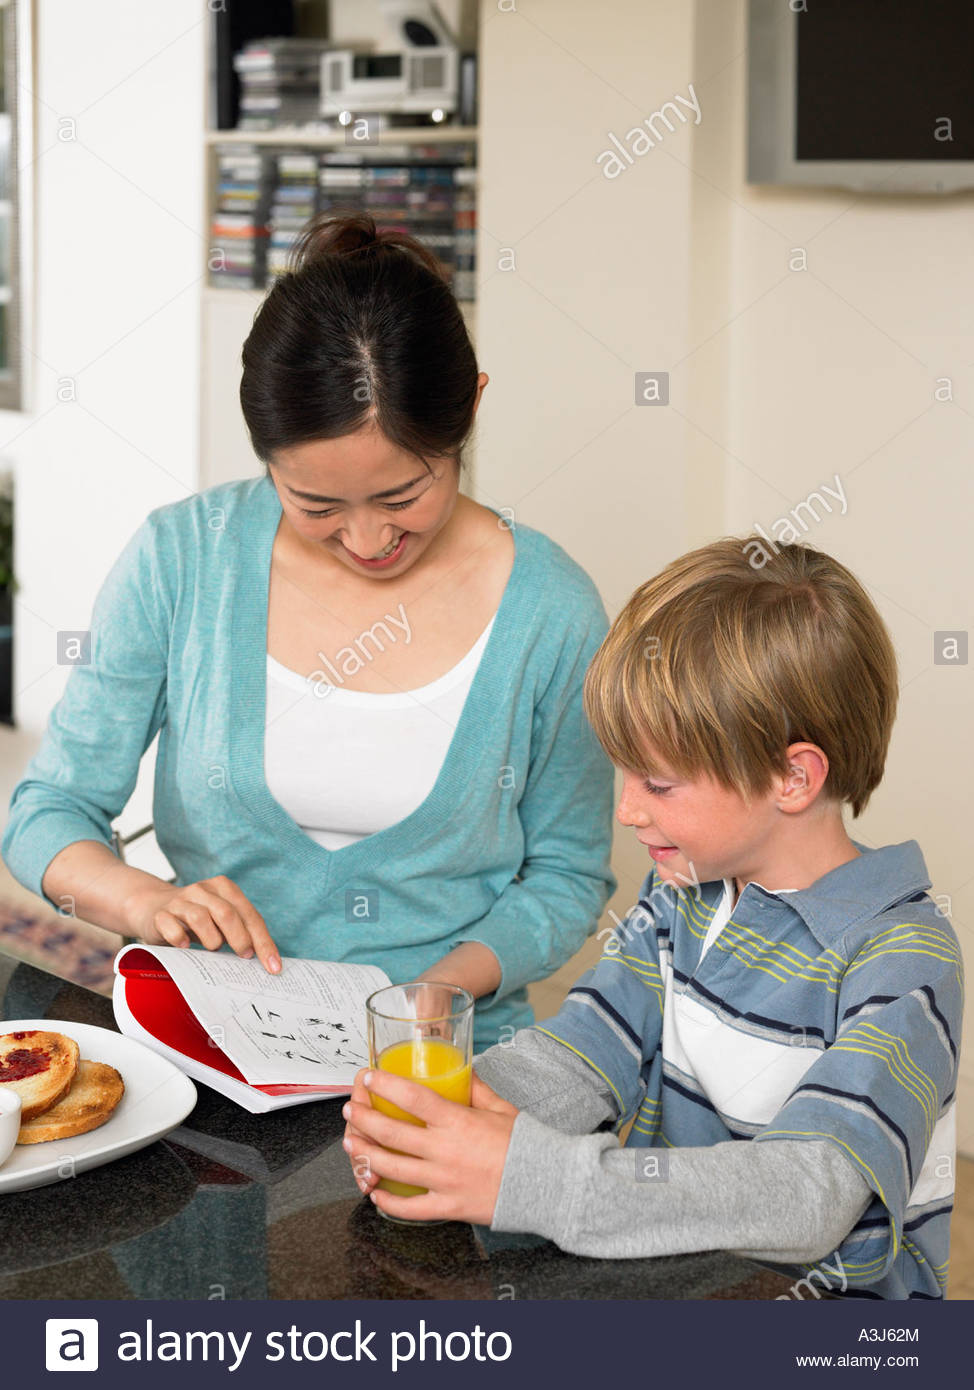 Exchange student and boy at breakfast - Stock Image